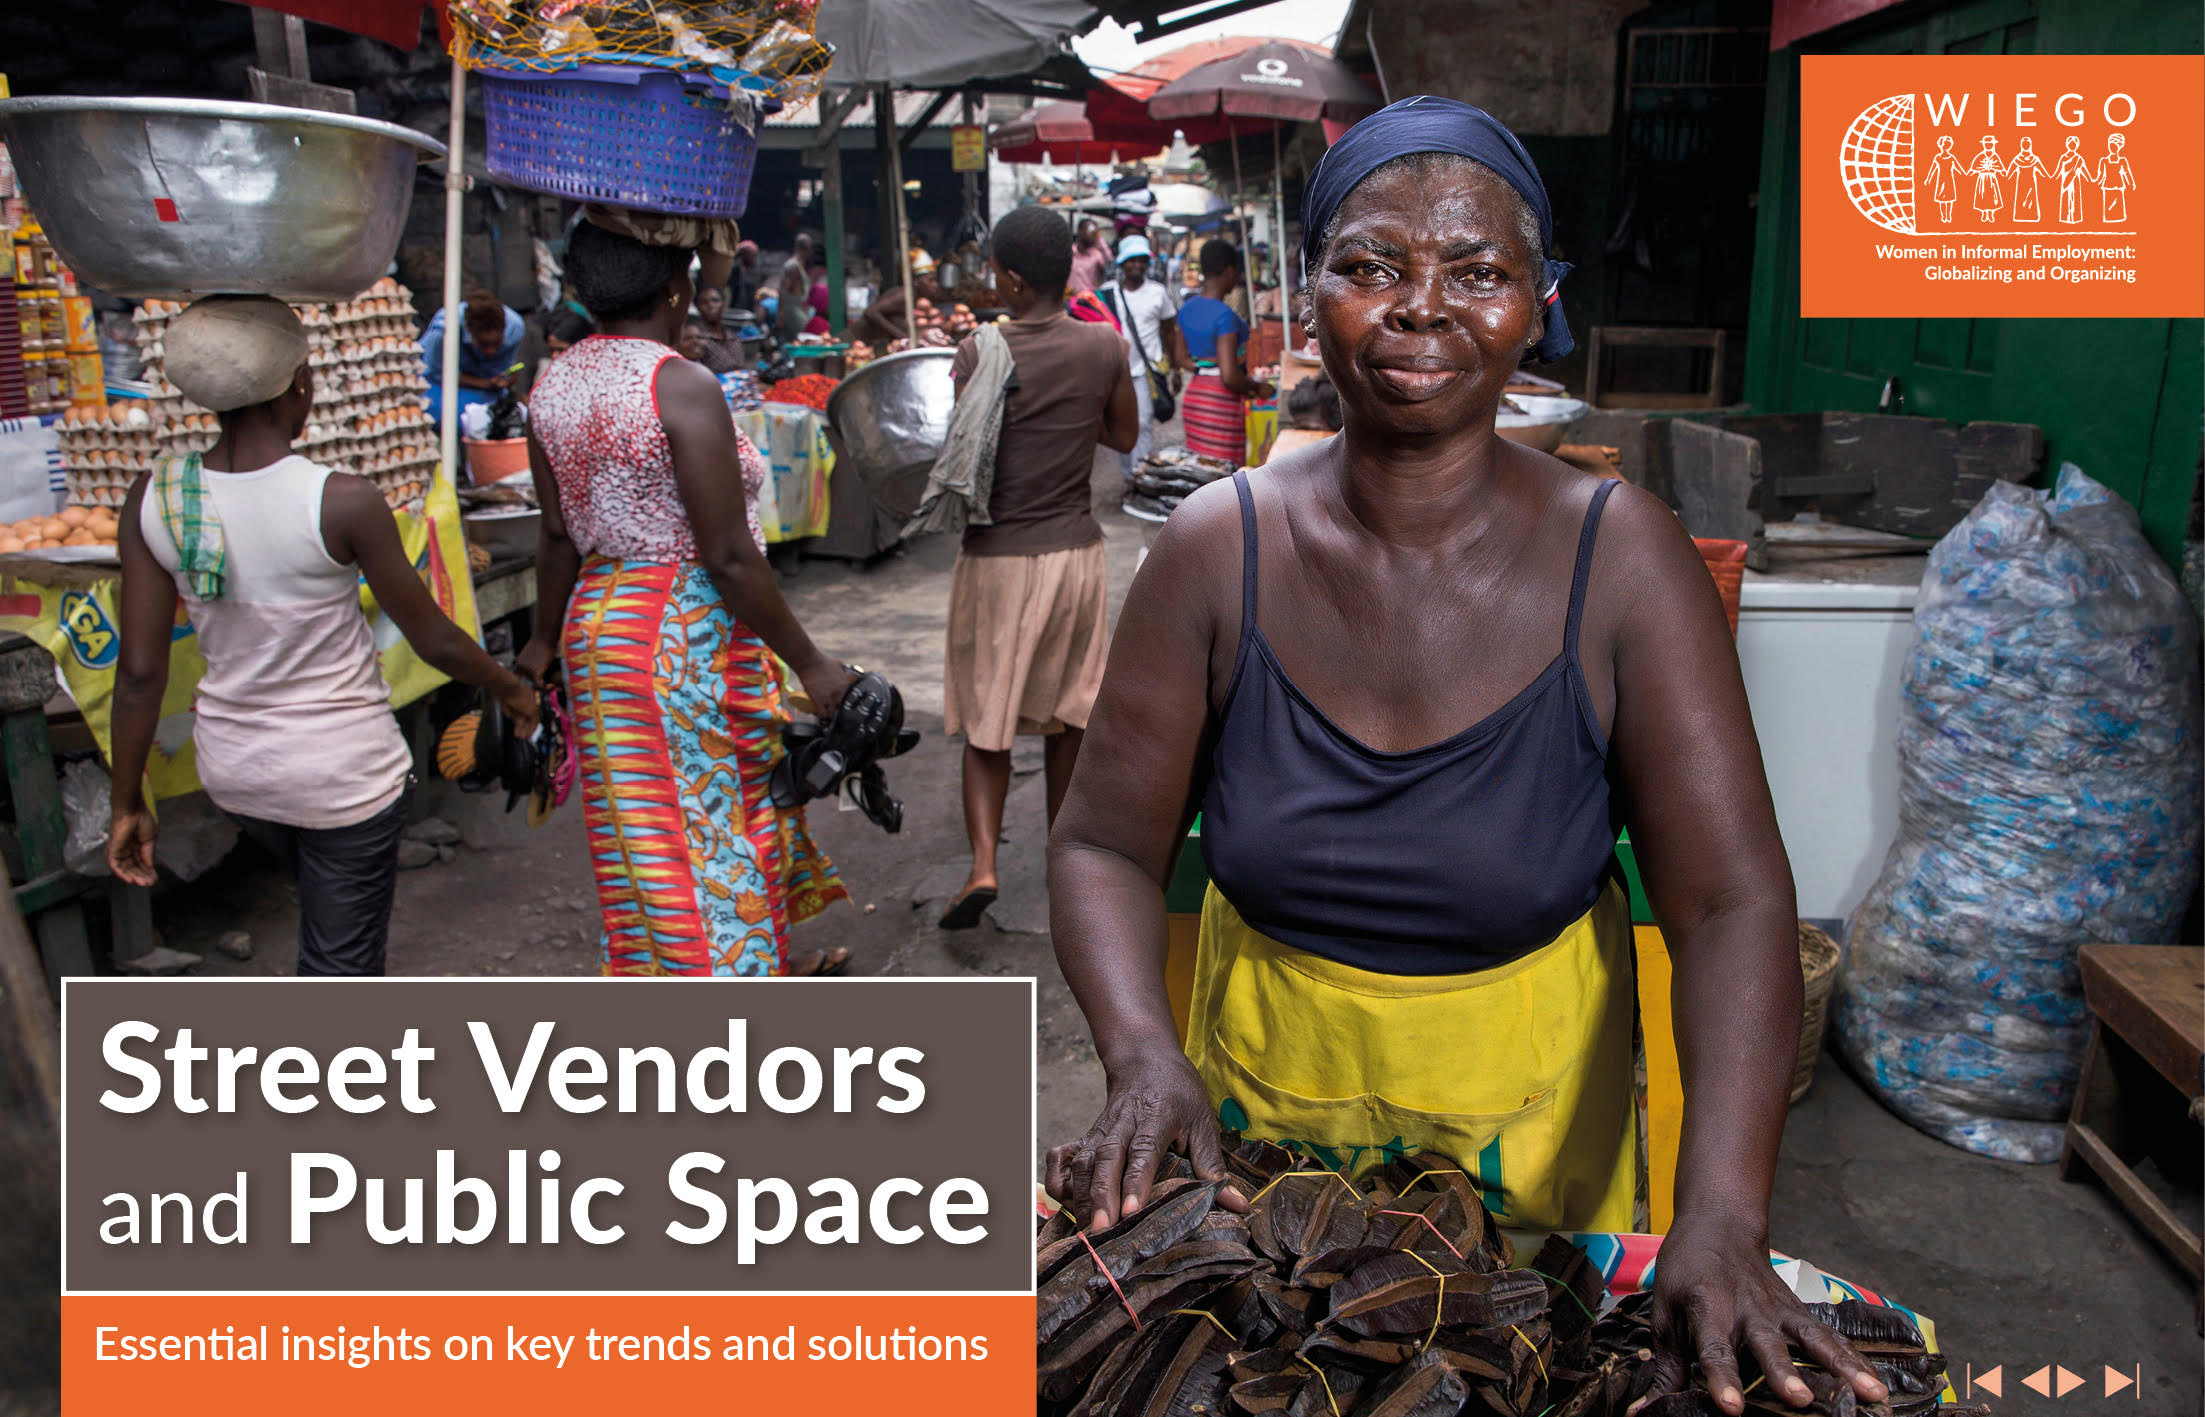 Street Vendors and Public Space Ebook Cover